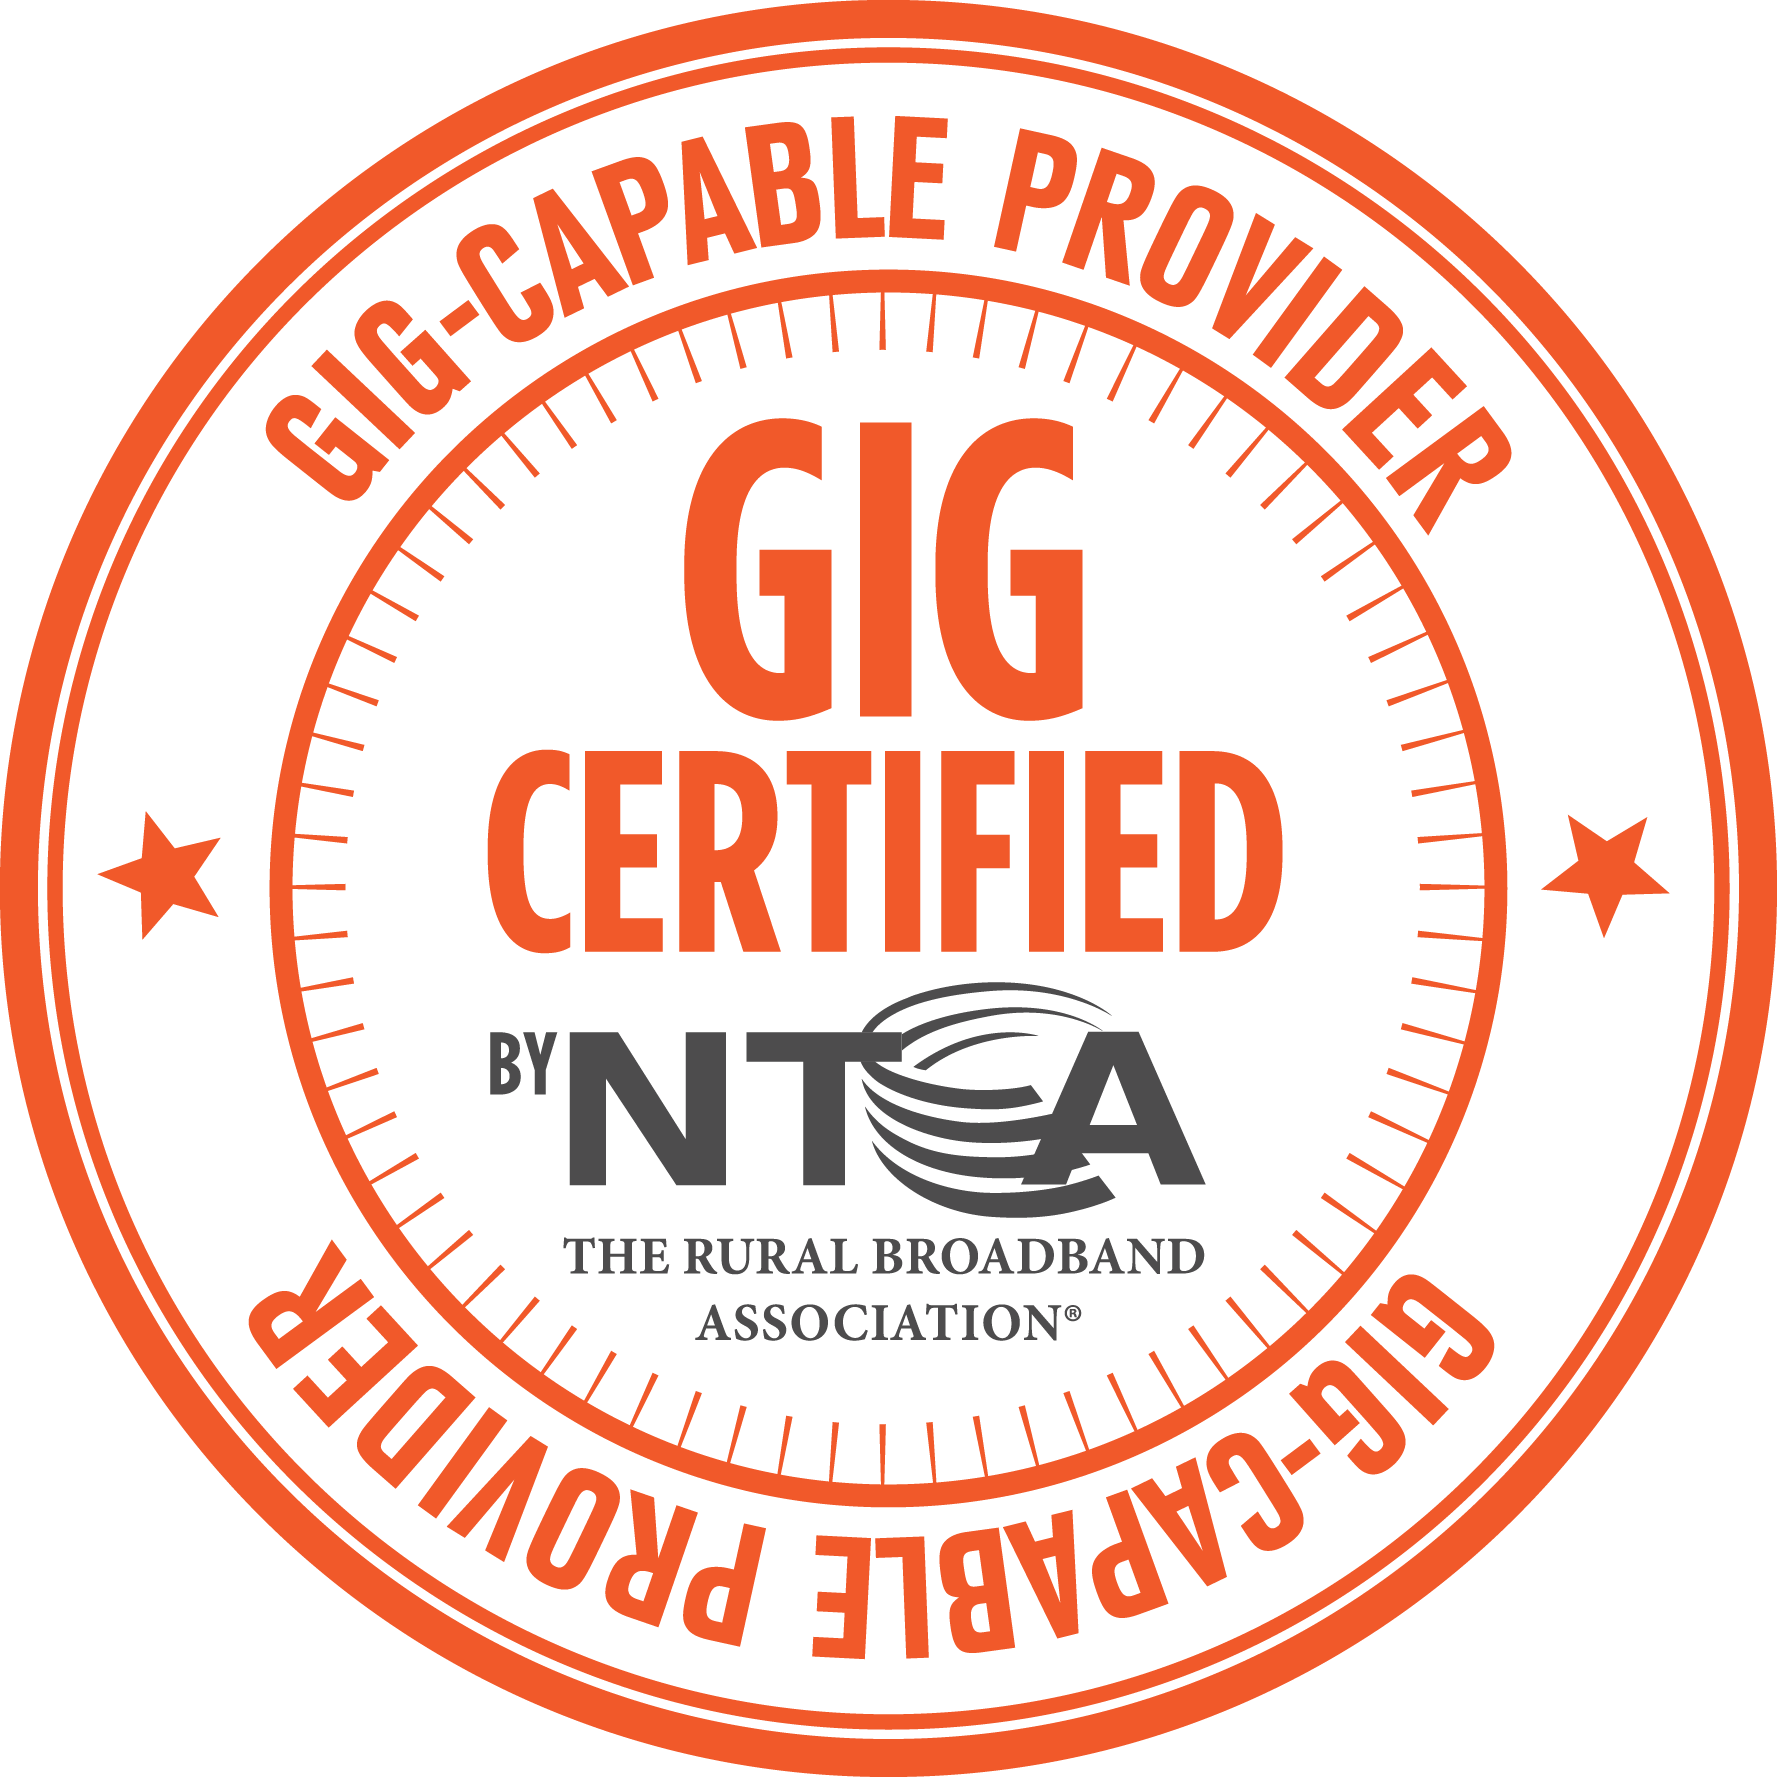 Blanca-Networks-Gig-Certified-Network-1-Gig-Speeds